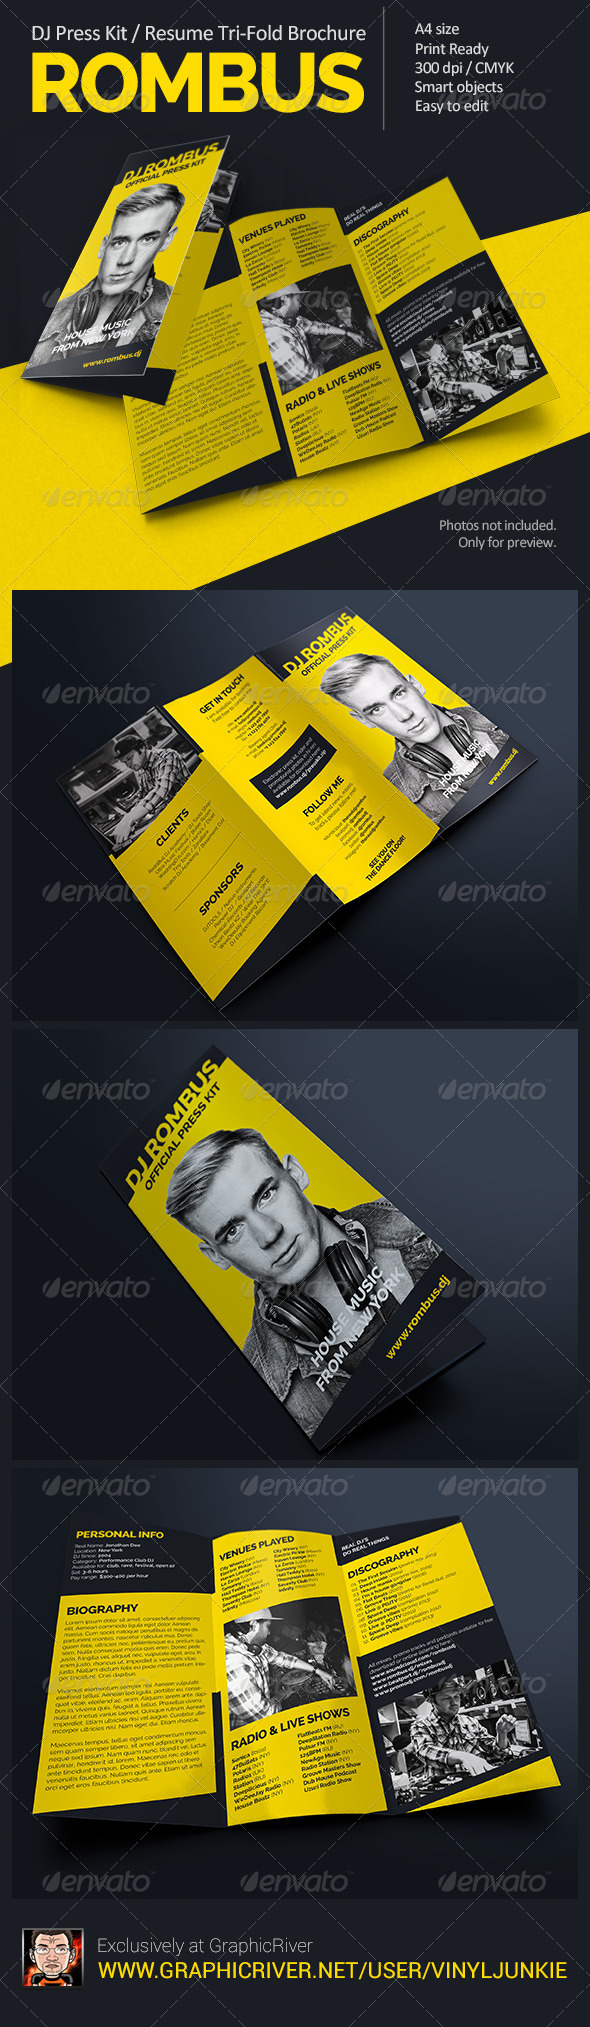 GraphicRiver Rombus DJ Press Kit Tri-Fold Brochure 8078497